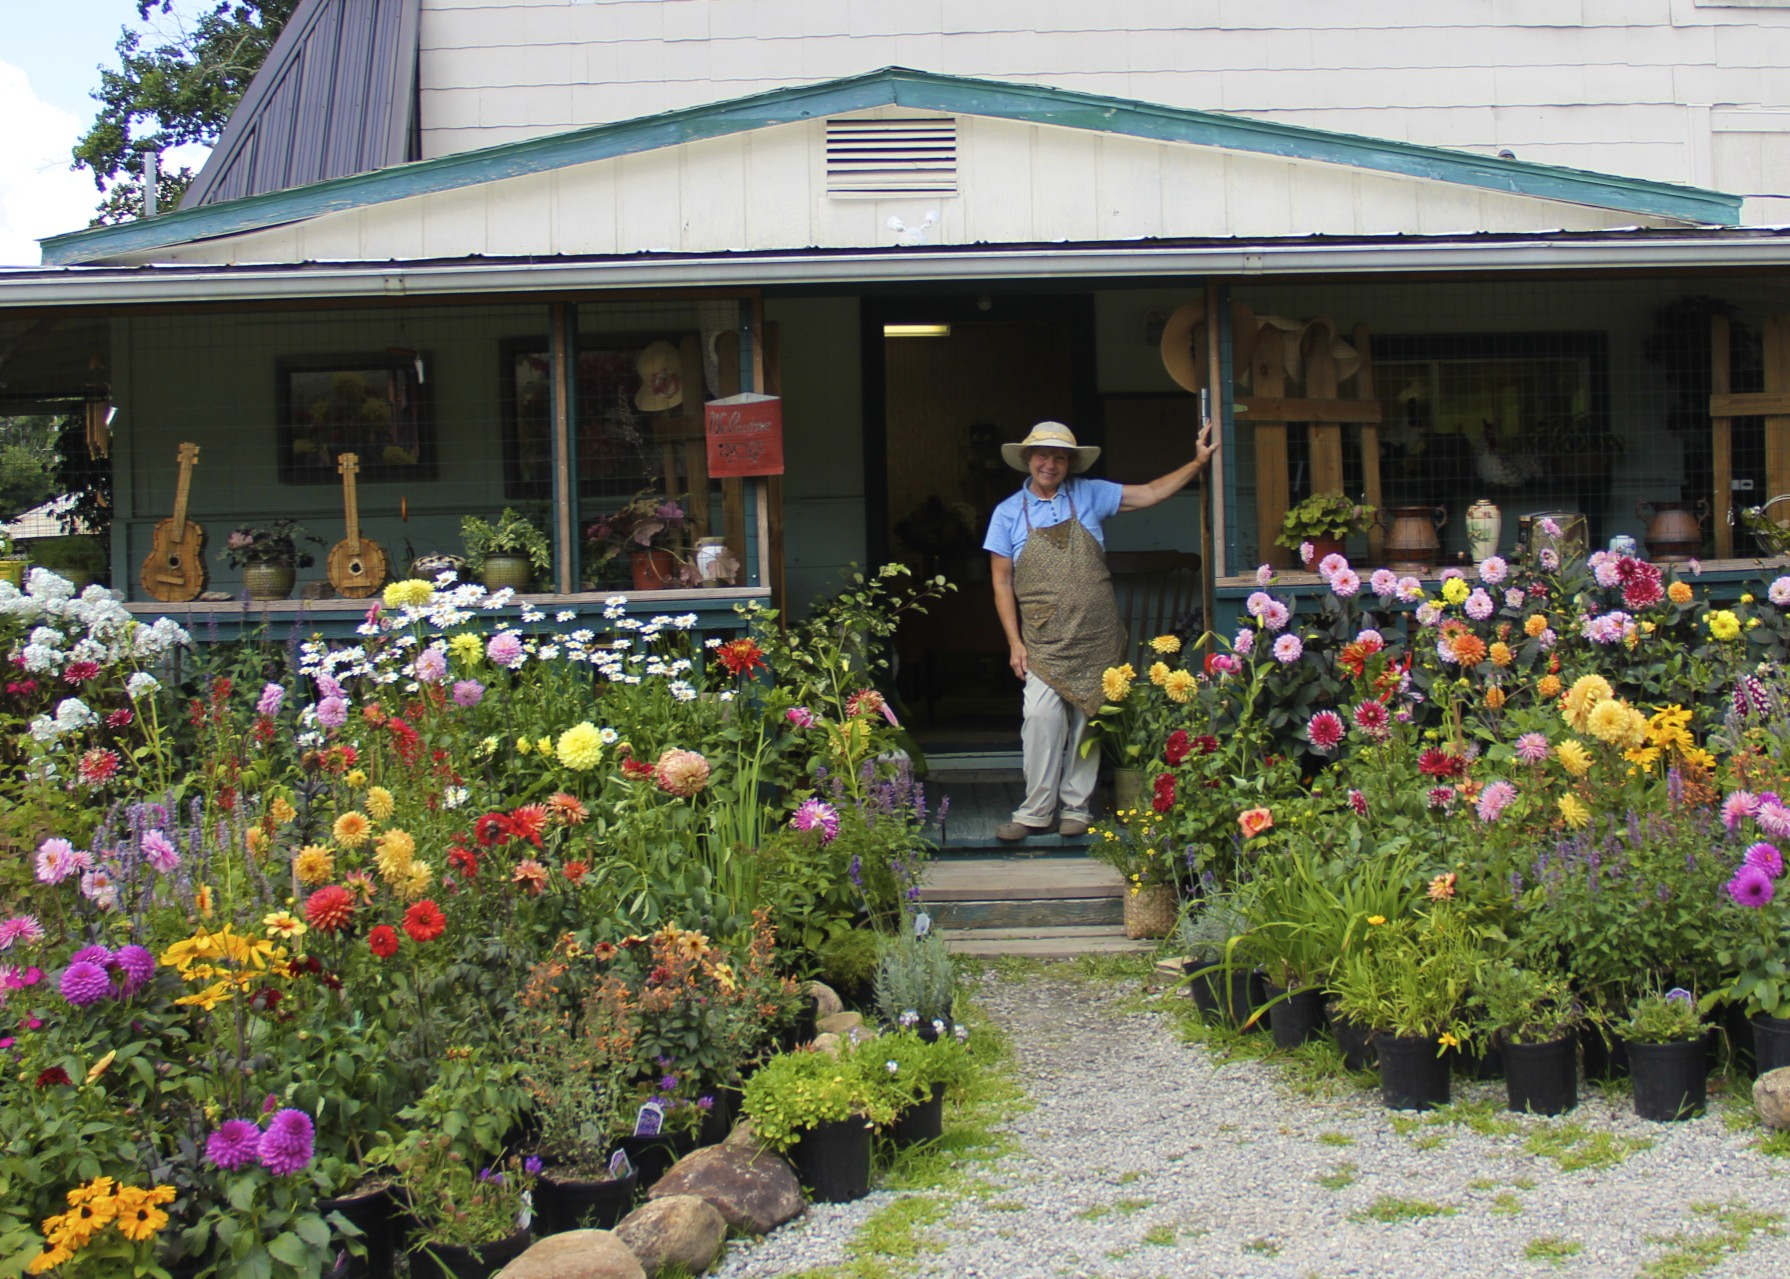 She Is Responsible For Some Of The Most Beautiful Plants And Flowers I Have Ever Seen Specializing In Dahlias All Colors Shapes Sizes